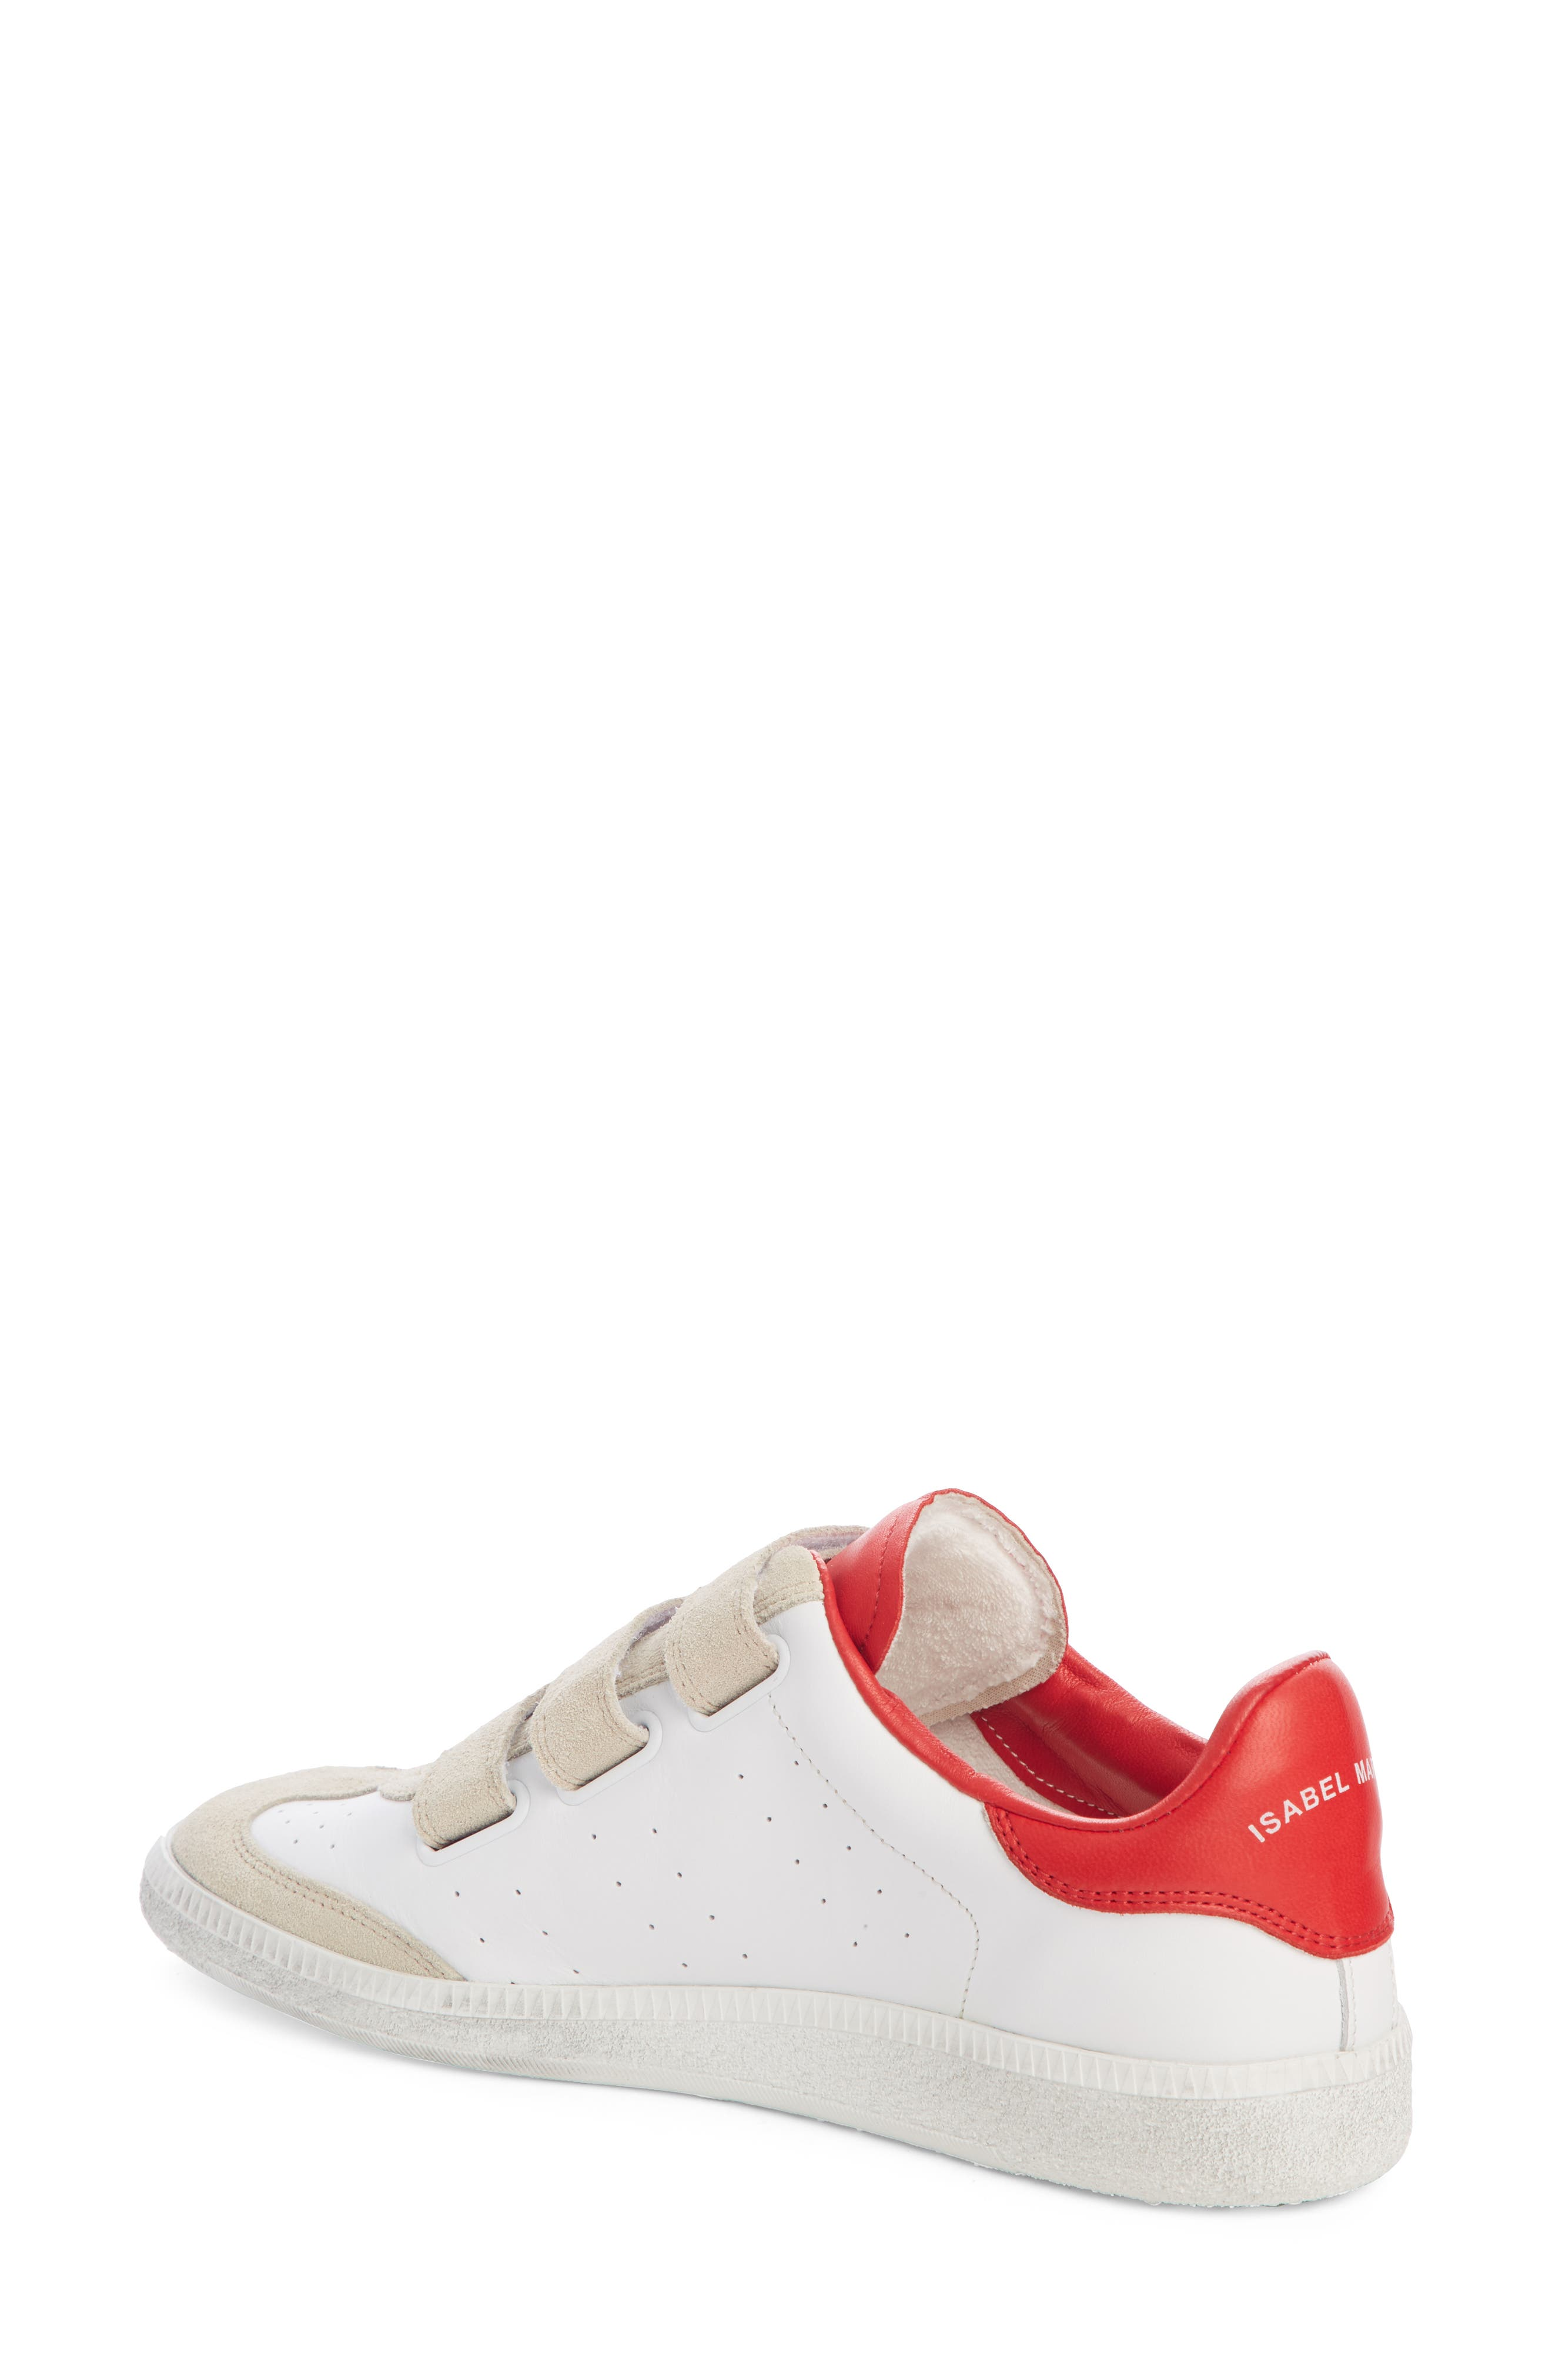 ISABEL MARANT,                             Beth Low Top Sneaker,                             Alternate thumbnail 2, color,                             WHITE / RED